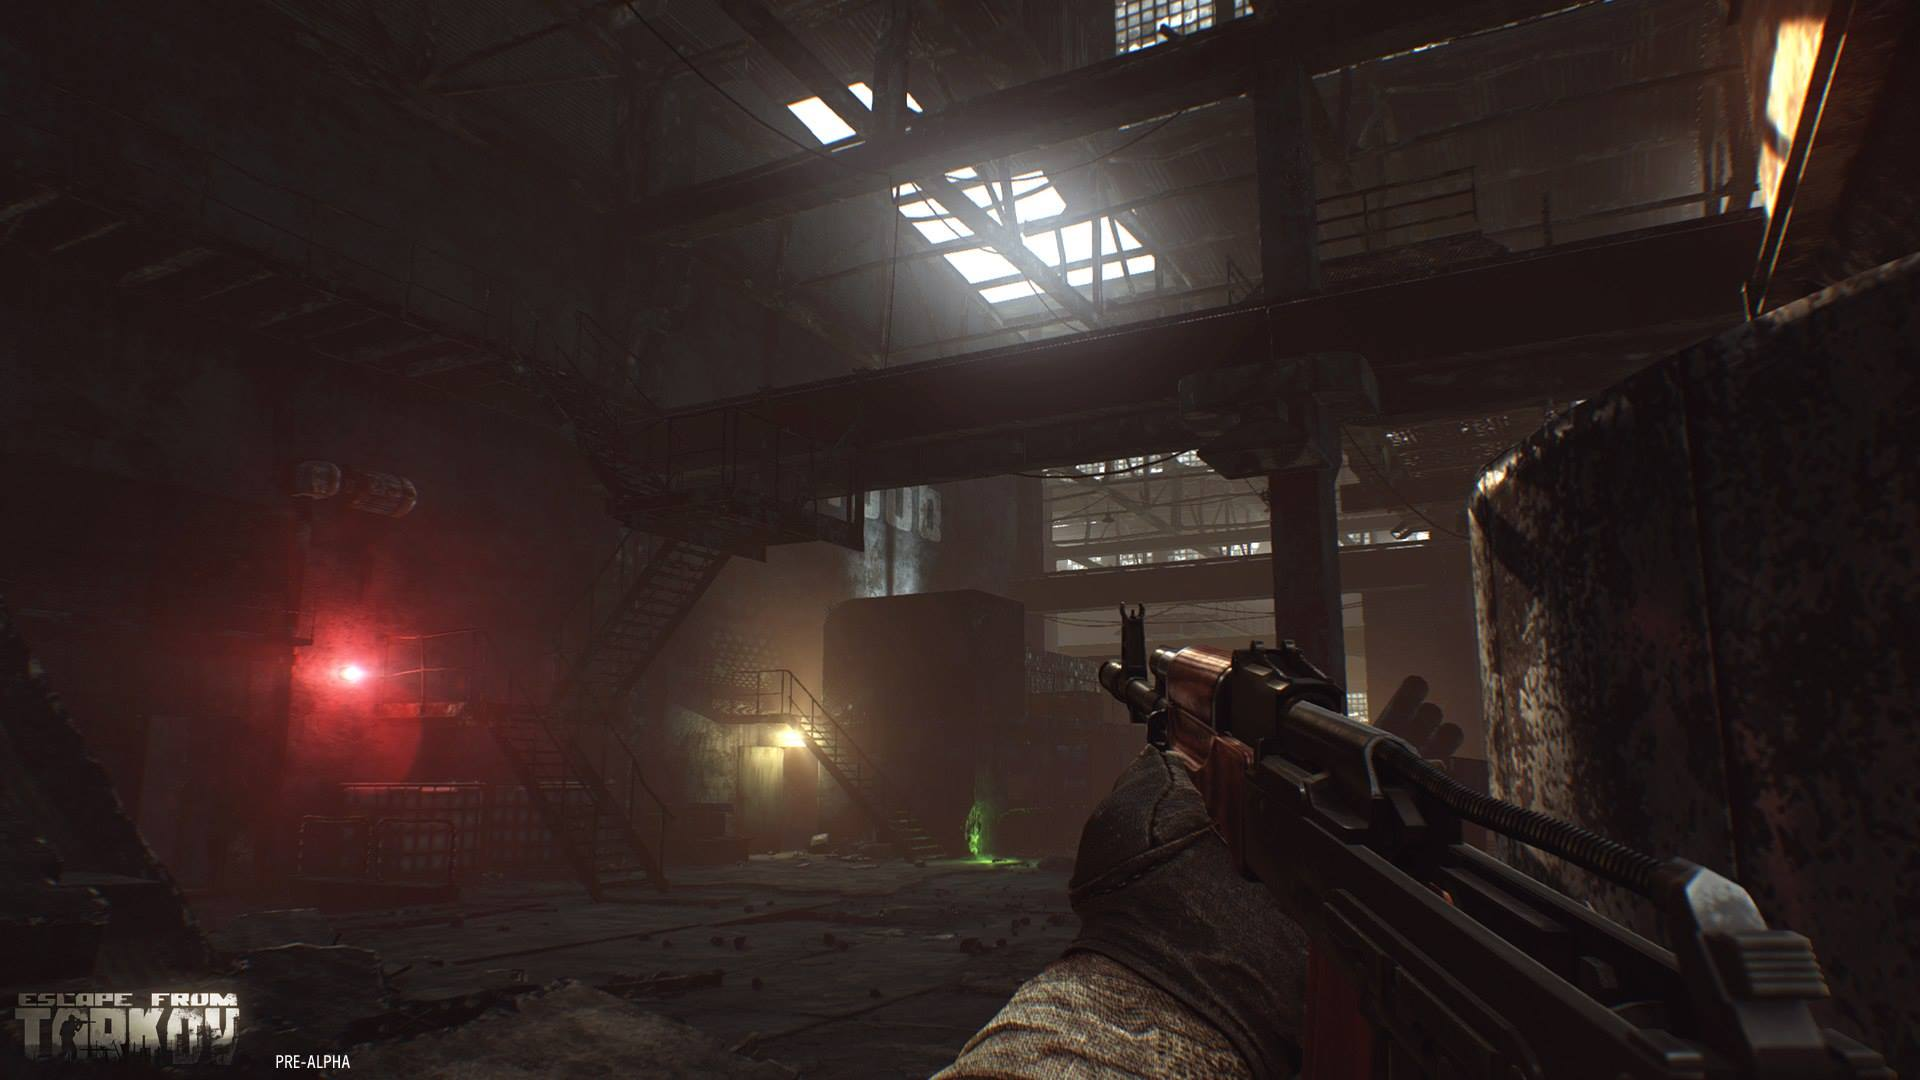 Titan Fall 2 Hd Wallpaper Escape From Tarkov May Be Coming To Consoles New Stunning